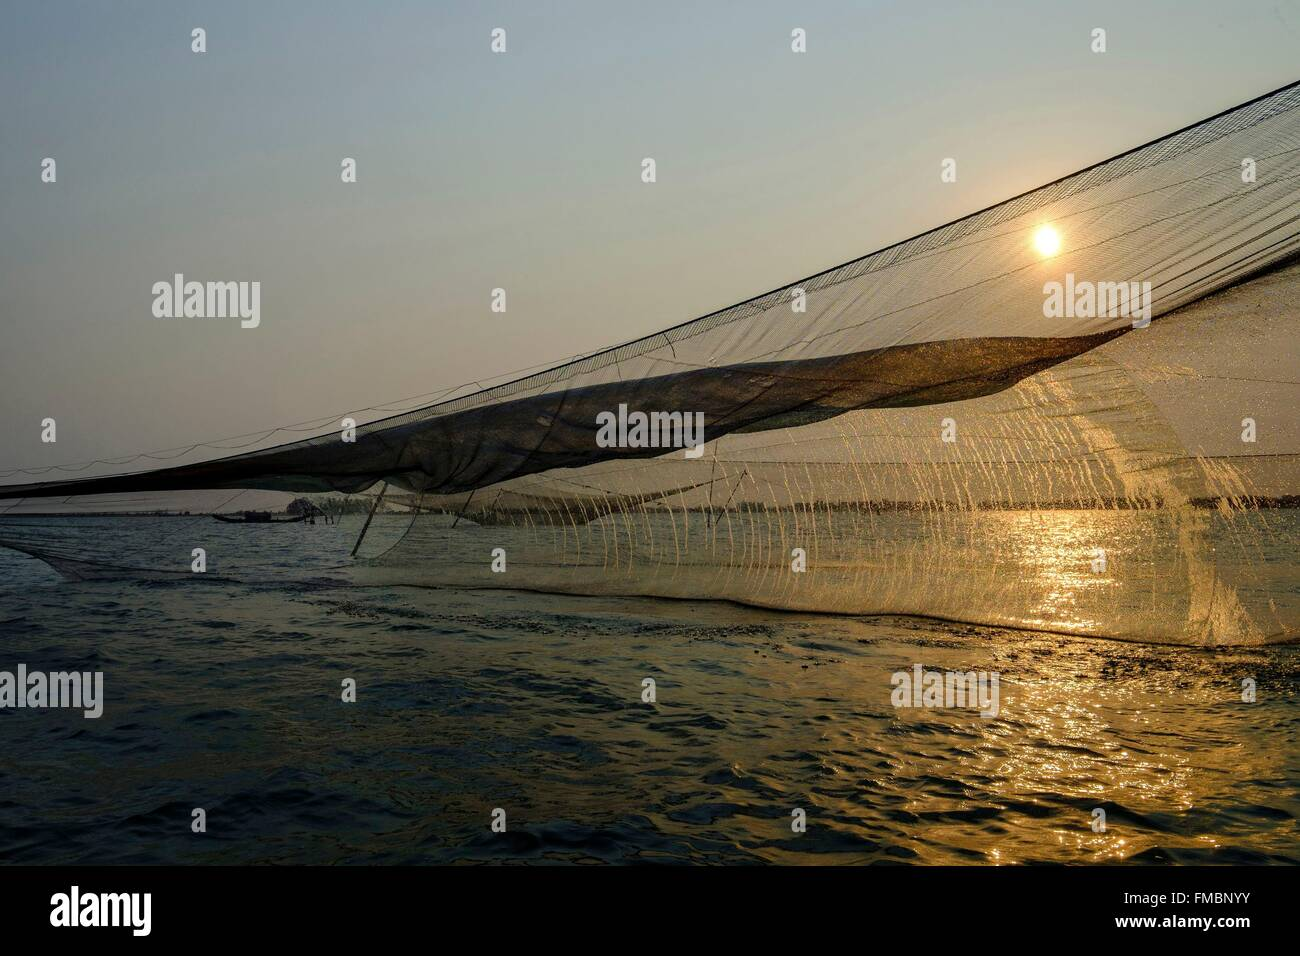 Vietnam, Thua Thien Hue province, fishing with square nets in Tam Giang lagoon - Stock Image